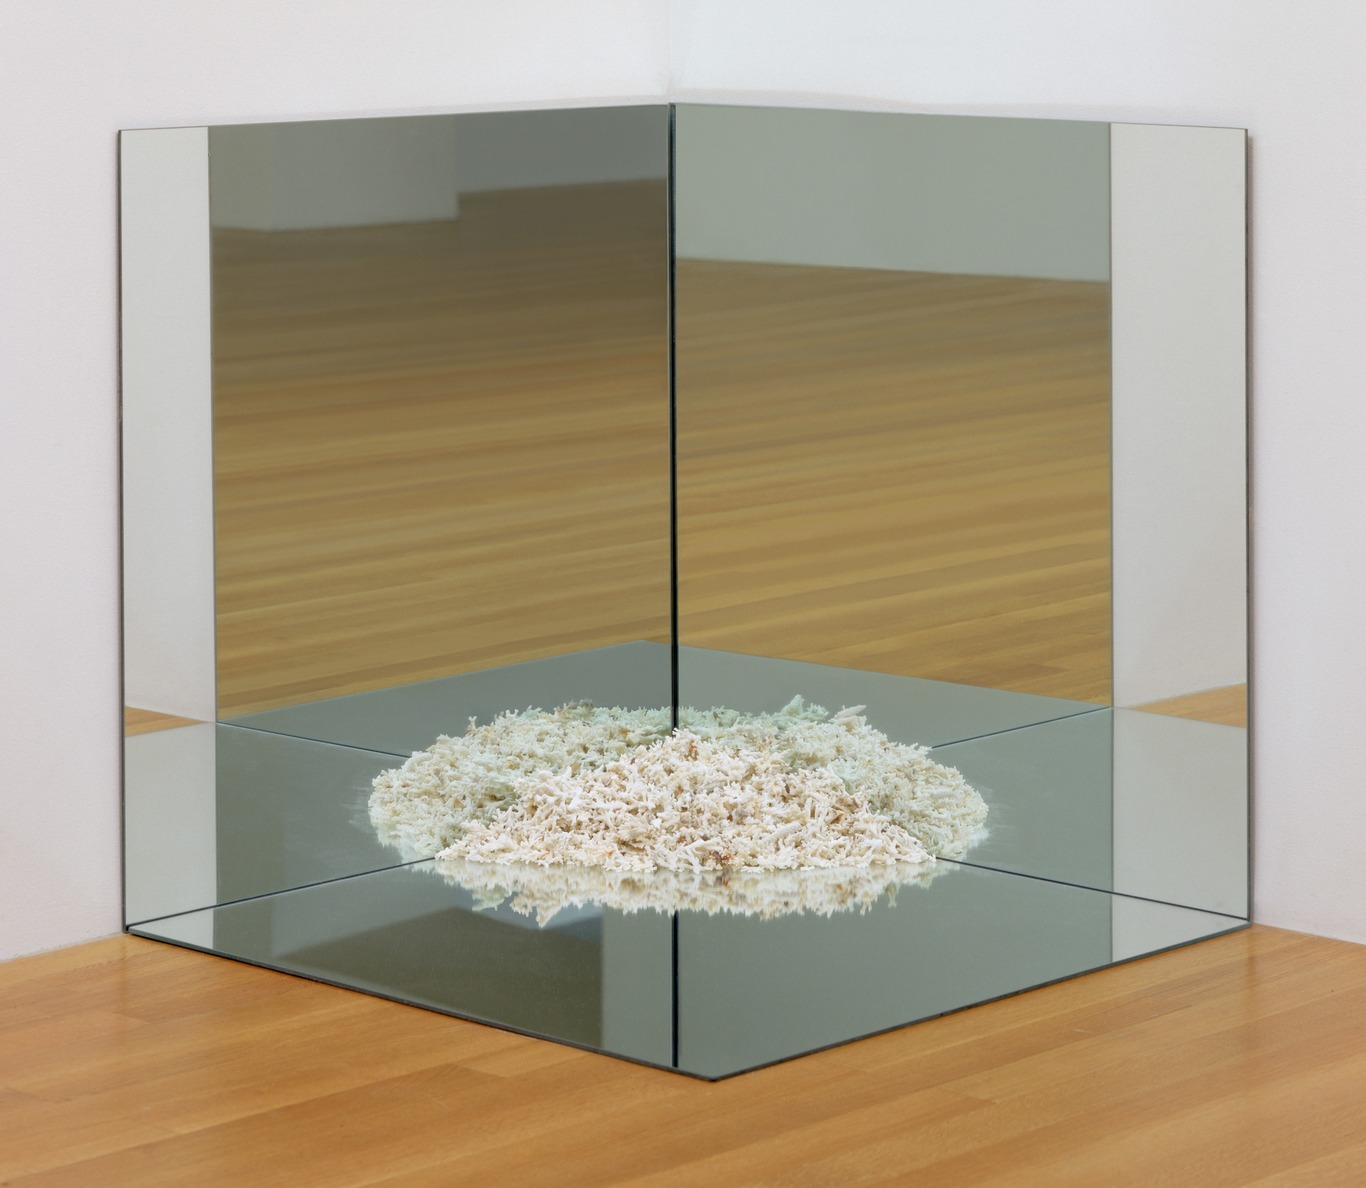 Robert Smithson: Corner Mirror with Coral, mirrors and coral, 915×915×915 mm, 1969 (New York, Museum of Modern Art); © 2007 Estate of Robert Smithson/Licenses by VAGA, New York, NY, courtesy of The Museum of Modern Art, New York